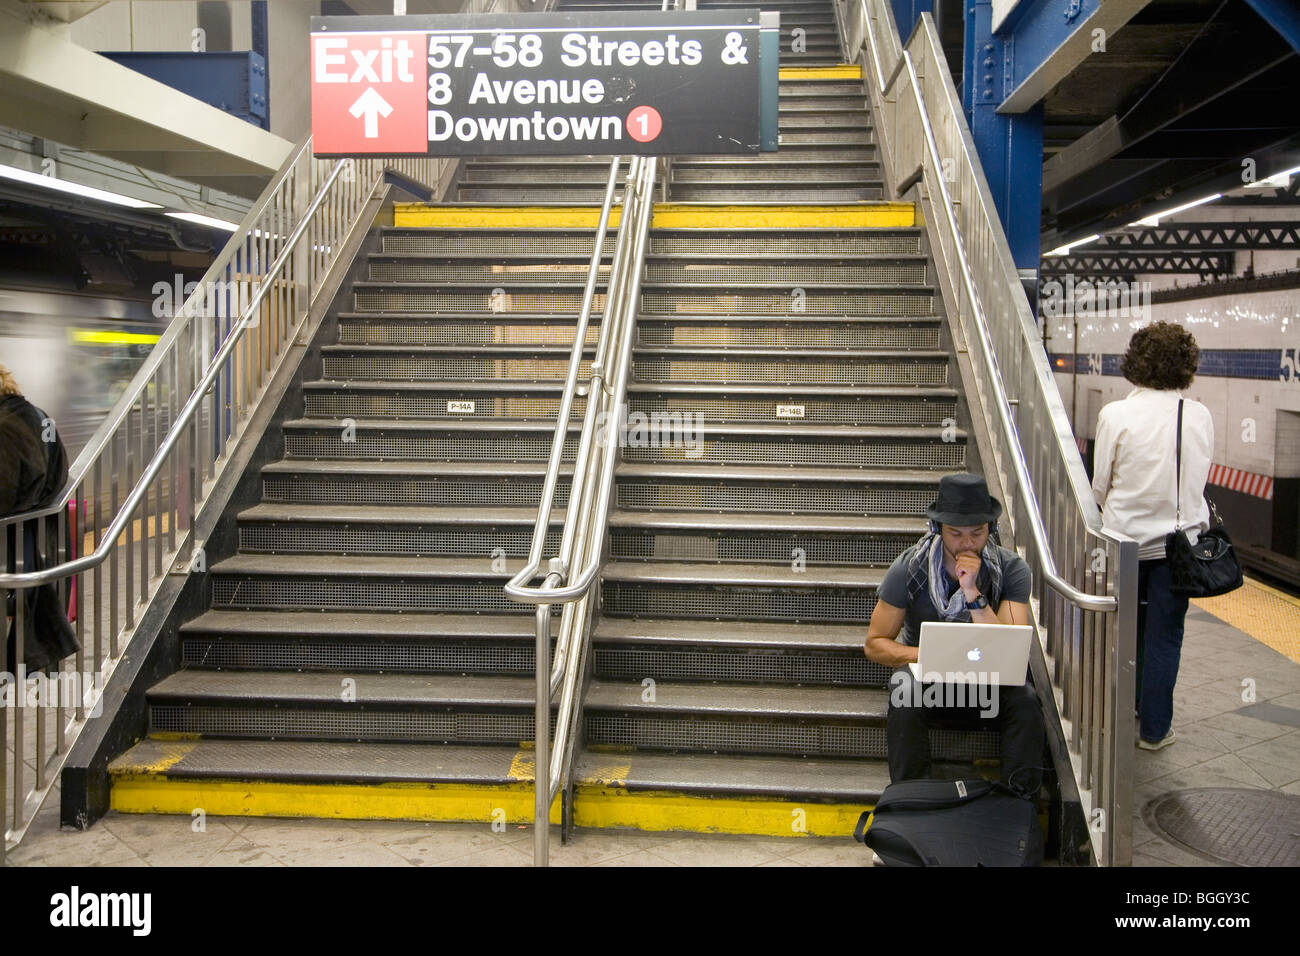 Apple laptop computer user sits on stairwell of New York City subway system - Stock Image